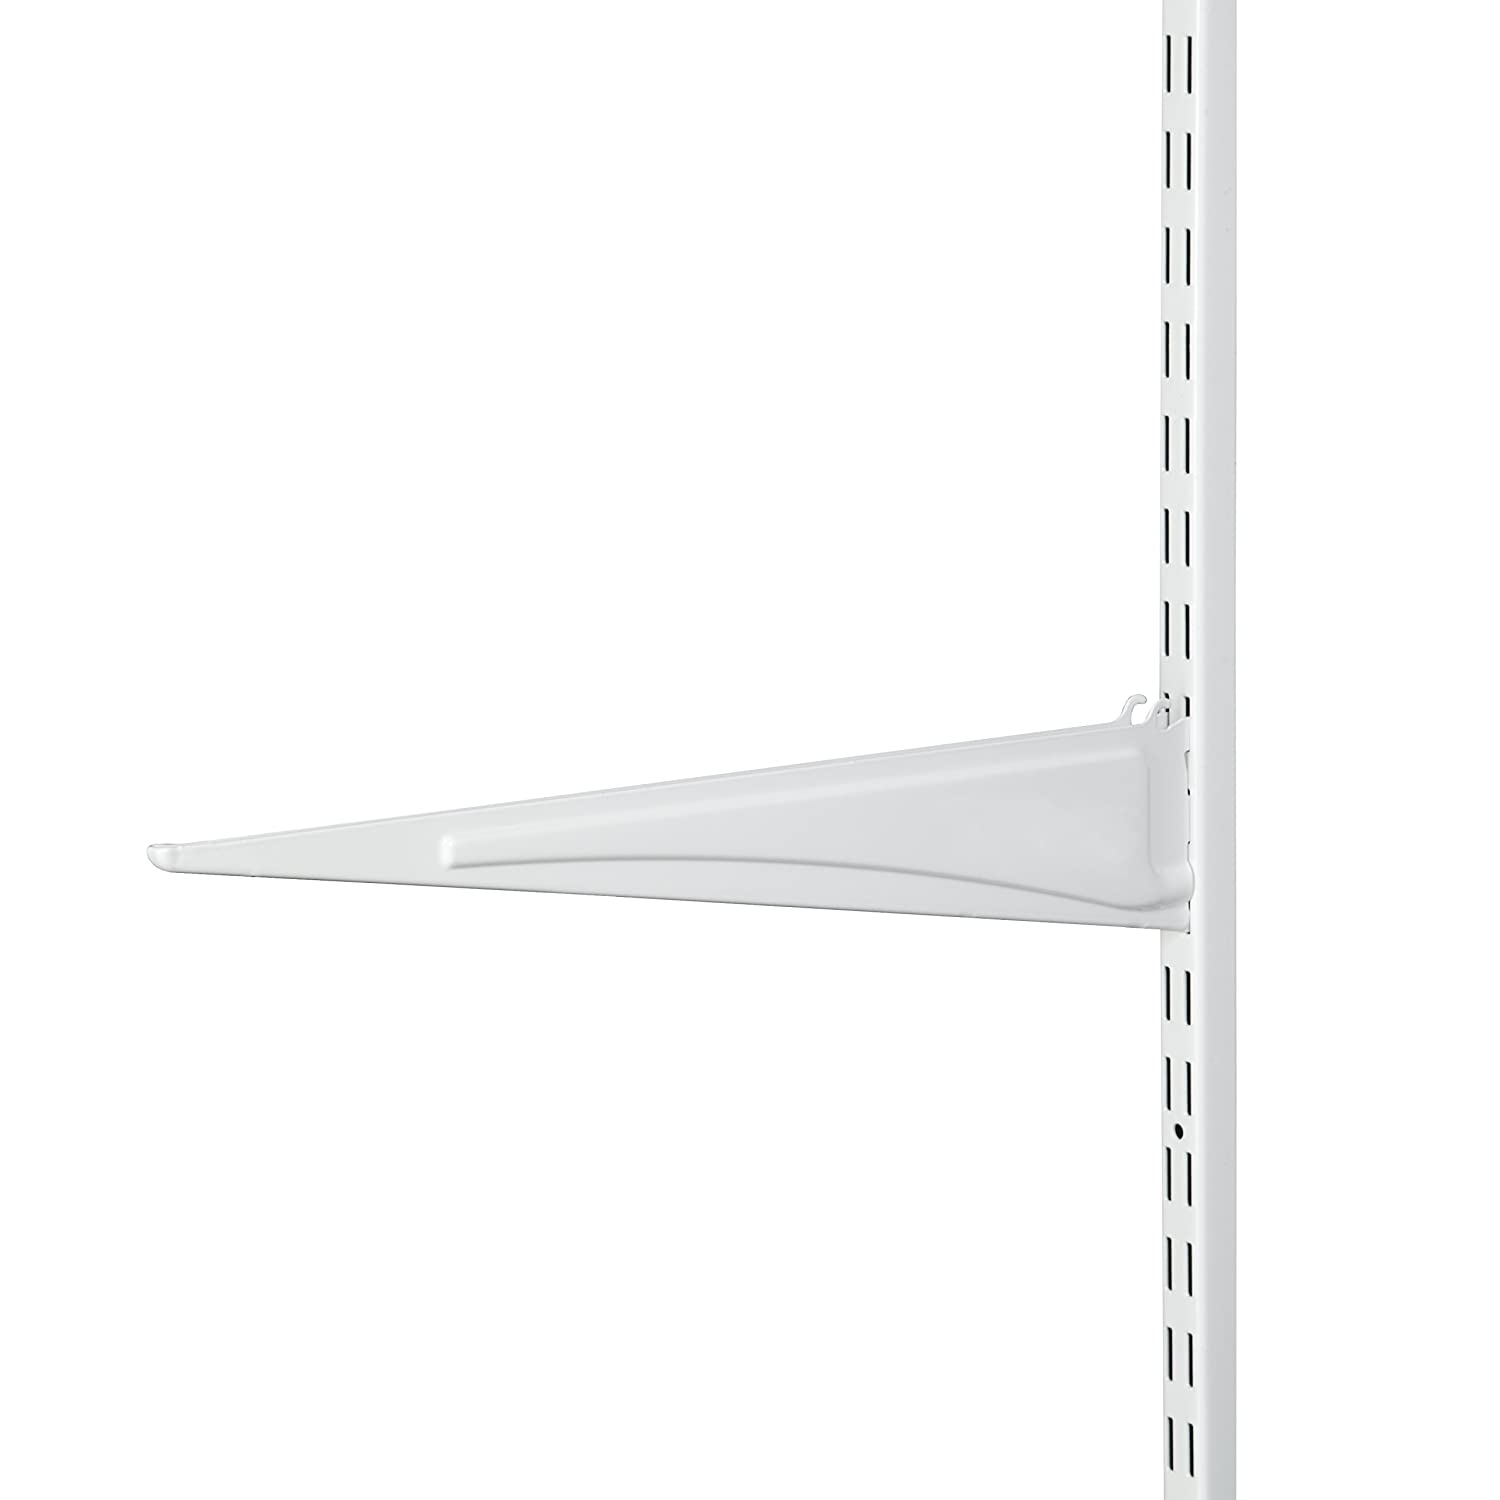 Amazon ClosetMaid 2854 ShelfTrack 16 Inch Locking Shelf Bracket White Home Kitchen